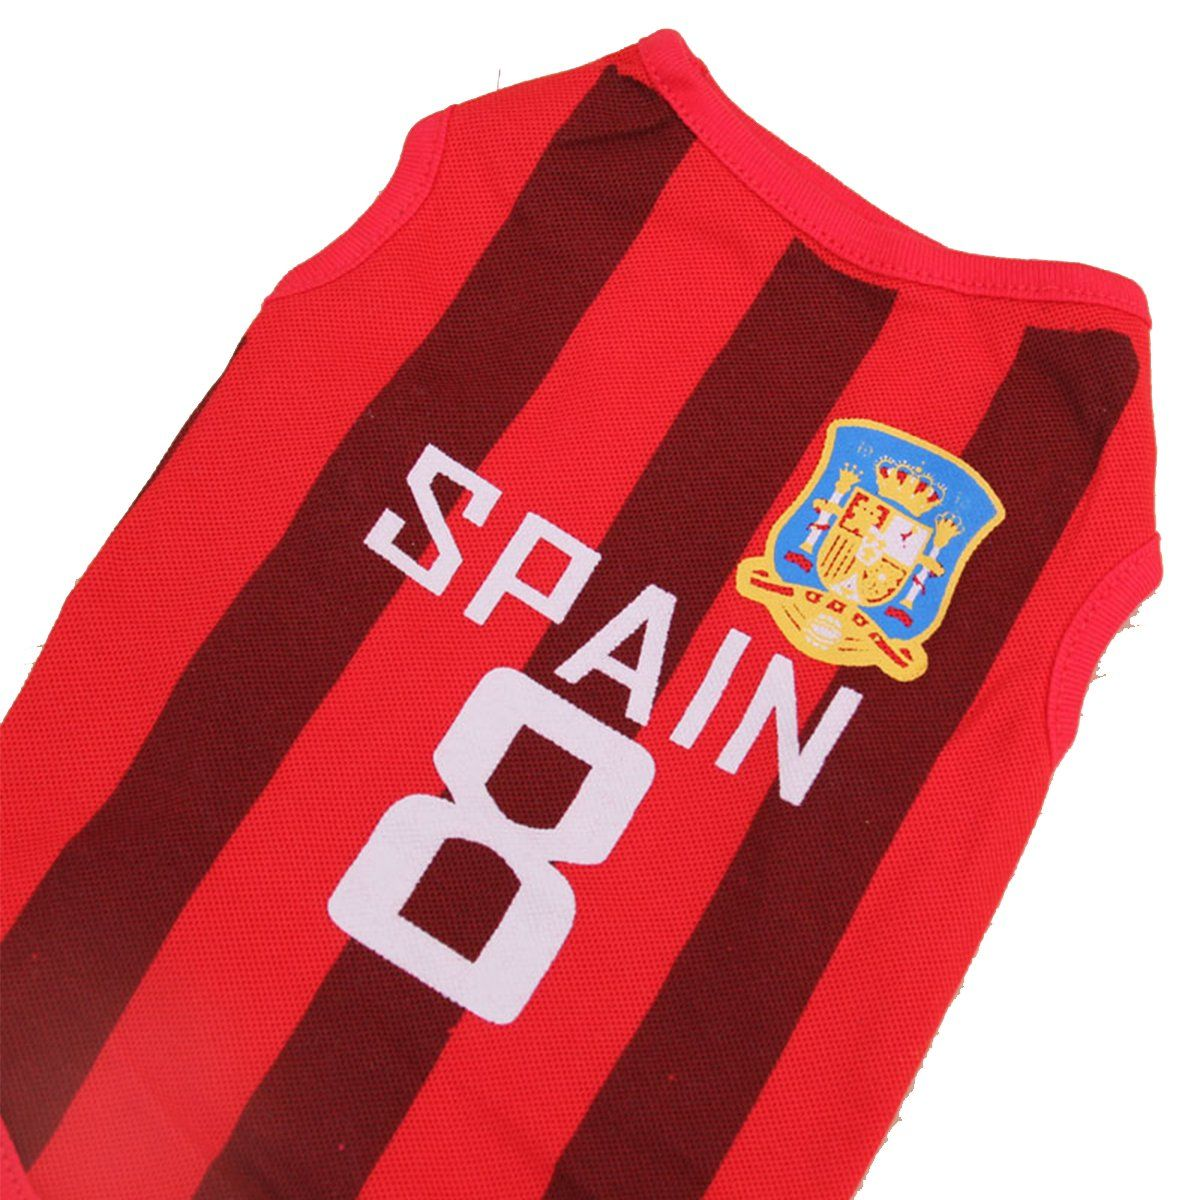 0cc8c29e1 SymbolLife Dog Clothes Football Tshirt Dogs Costume National Soccer World  Cup FIFA Jersey for Pet Spain    Remain to the item at the picture link.